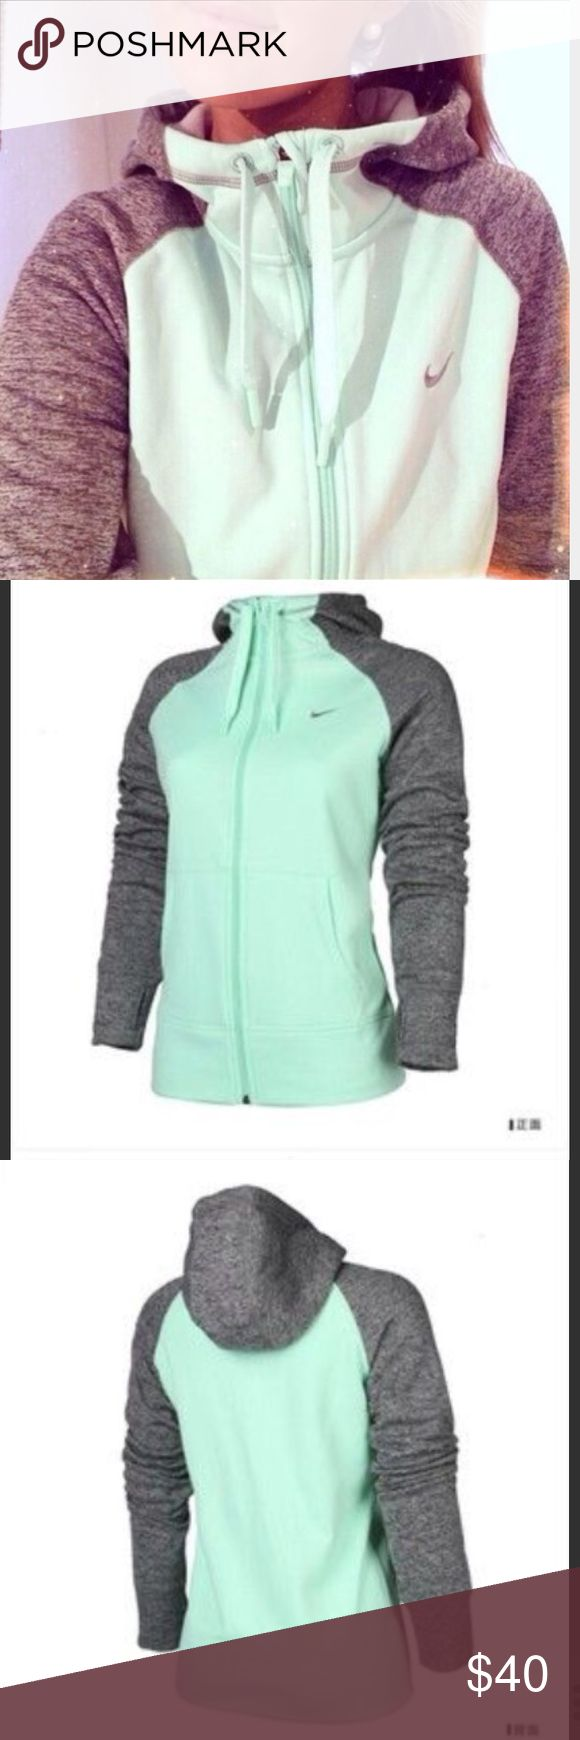 ISO!!!!!! Size S/M Looking for this sweatshirt! Want those colors Nike Jackets & Coats